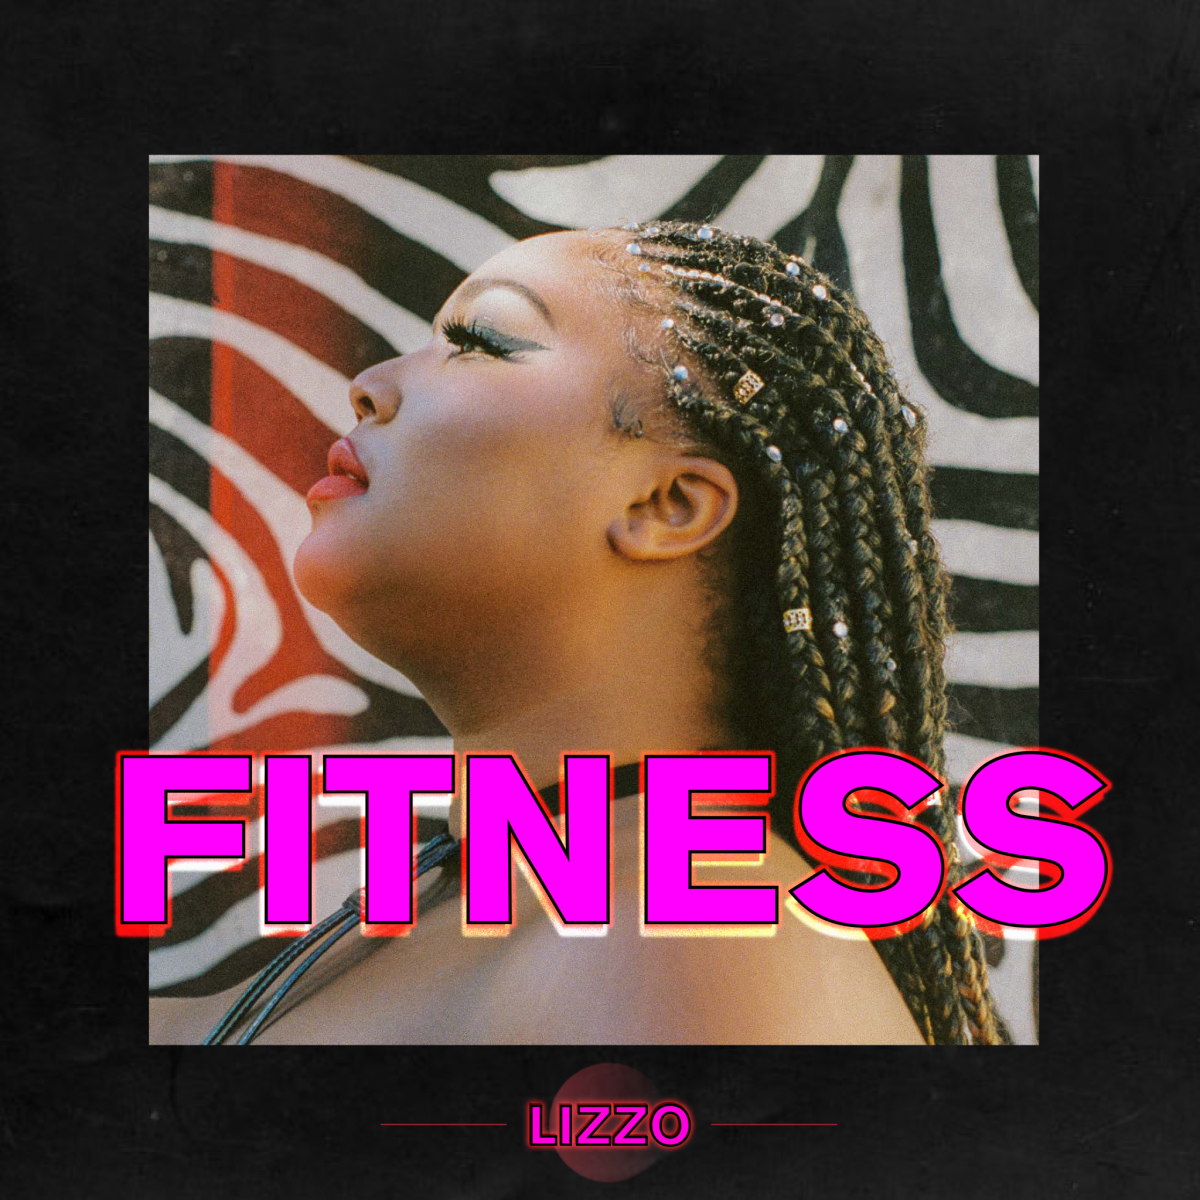 fitness album cover